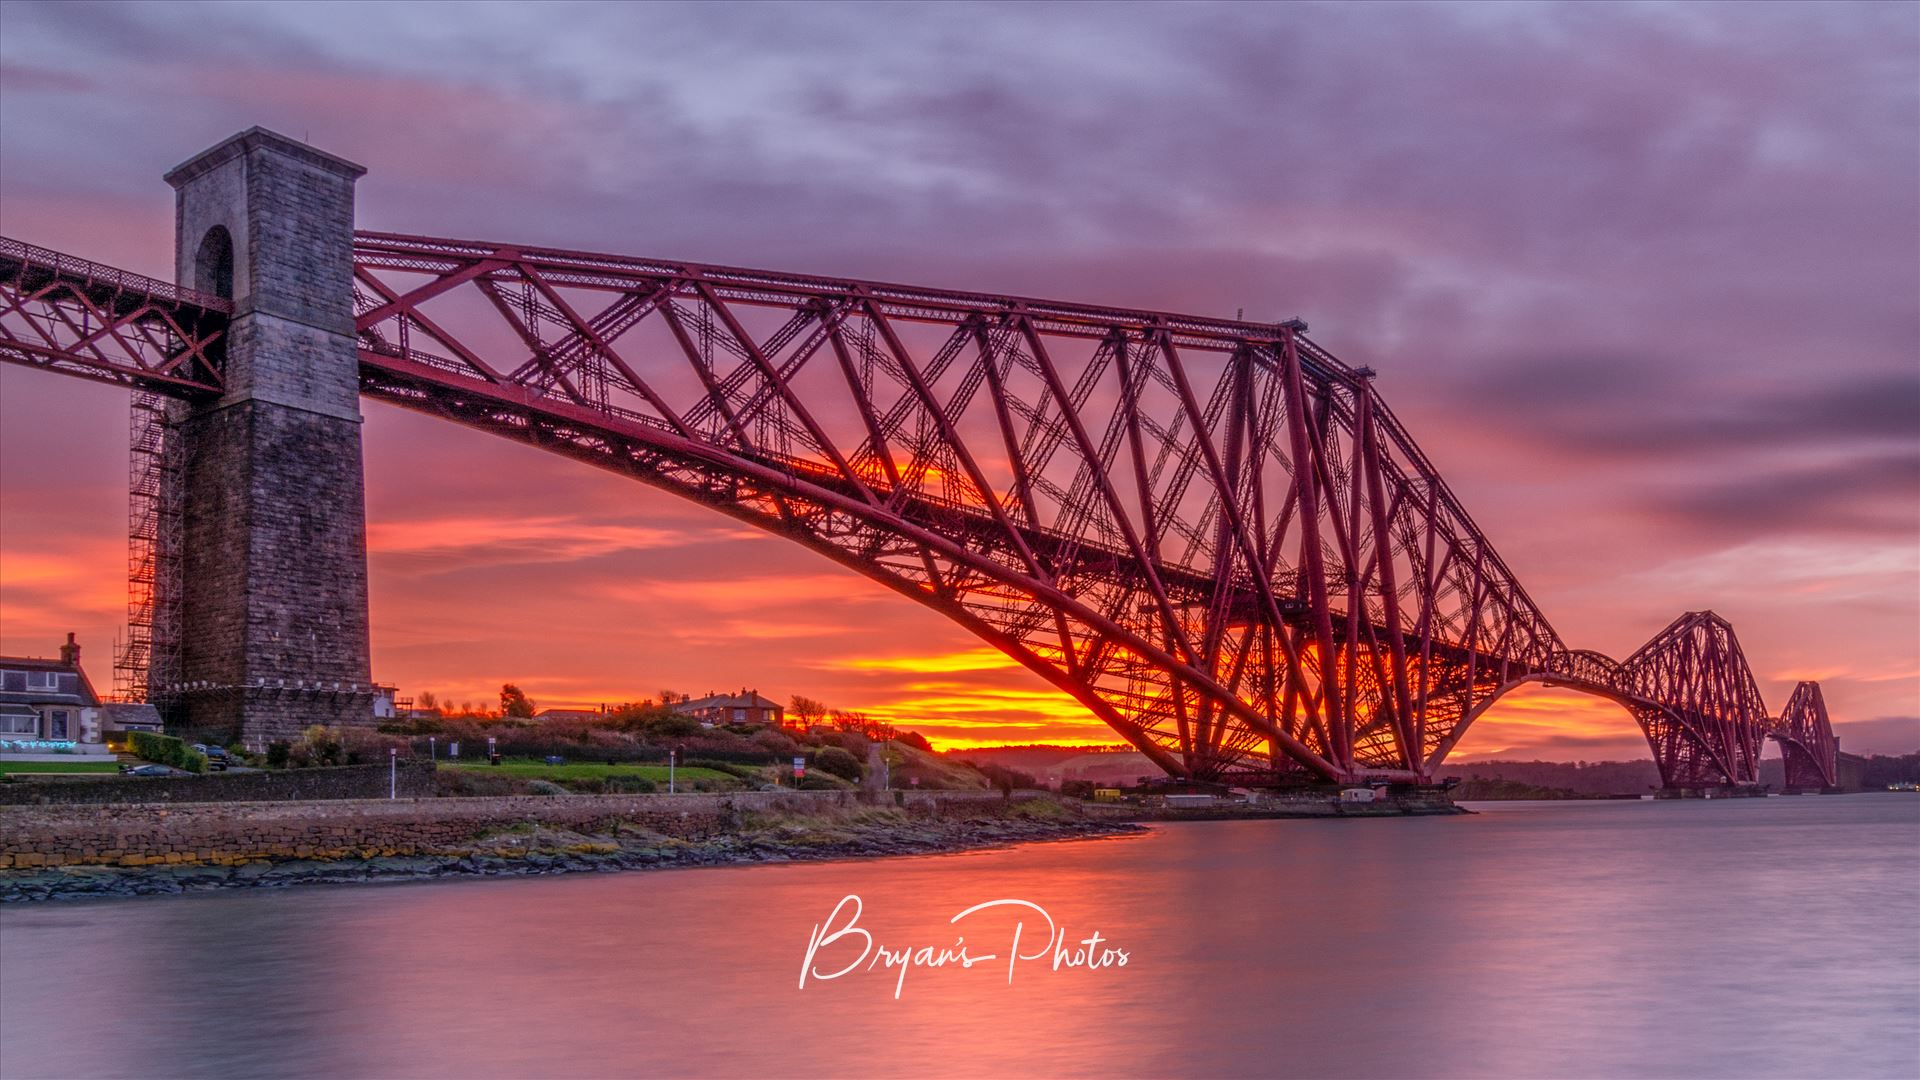 Rail Bridge Sunrise A photograph of the Forth Rail Bridge taken at Sunrise from North Queensferry. by Bryans Photos